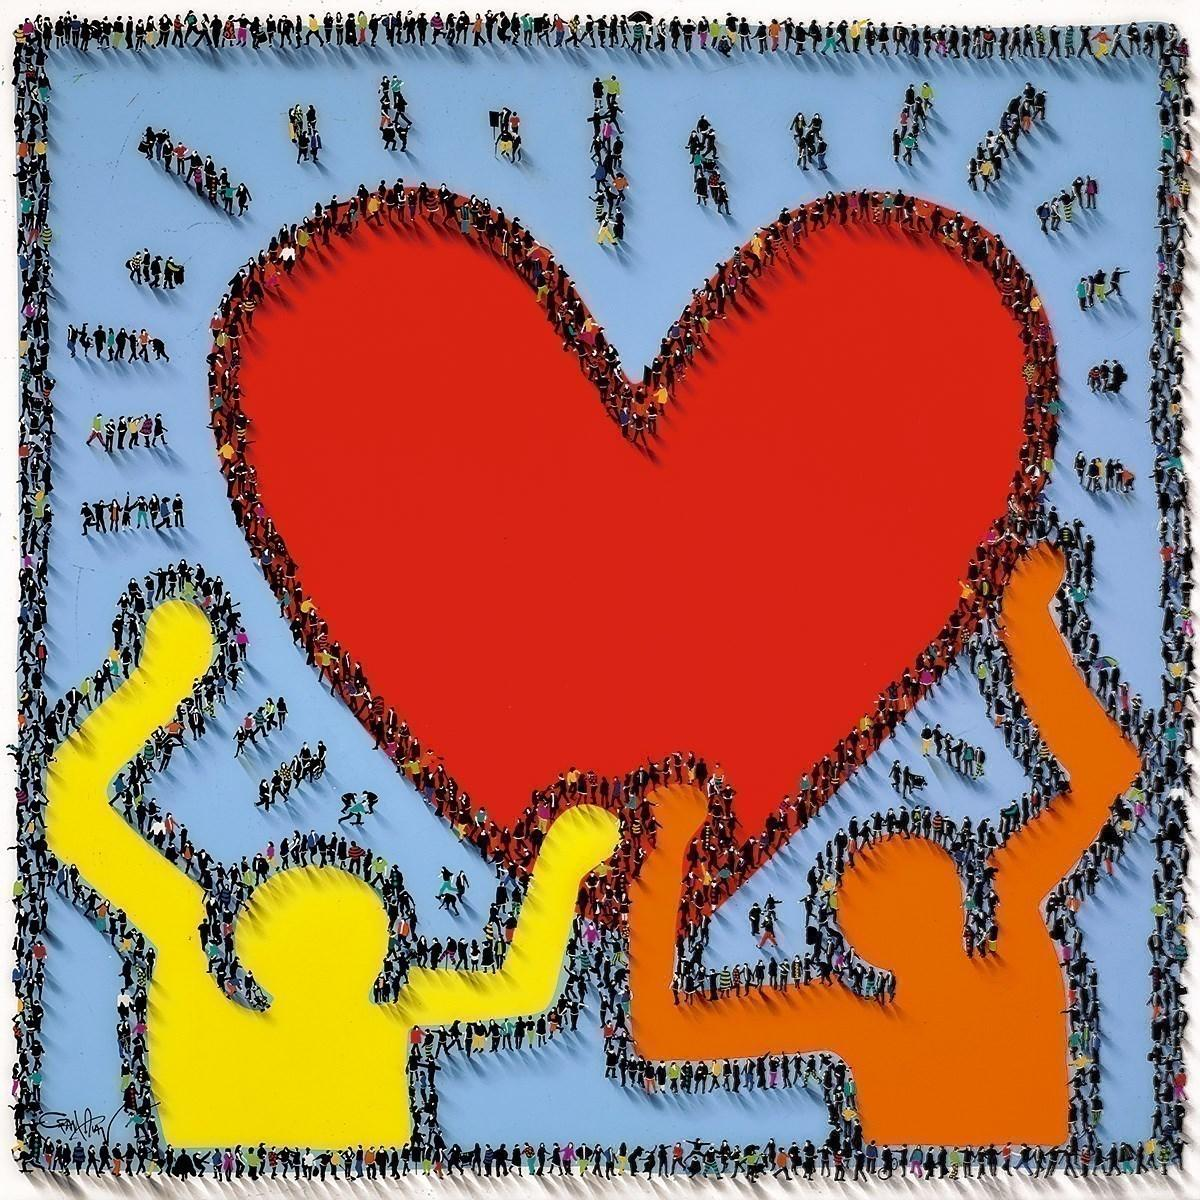 Share the Love by Craig Alan - Limited Edition art print LALN033